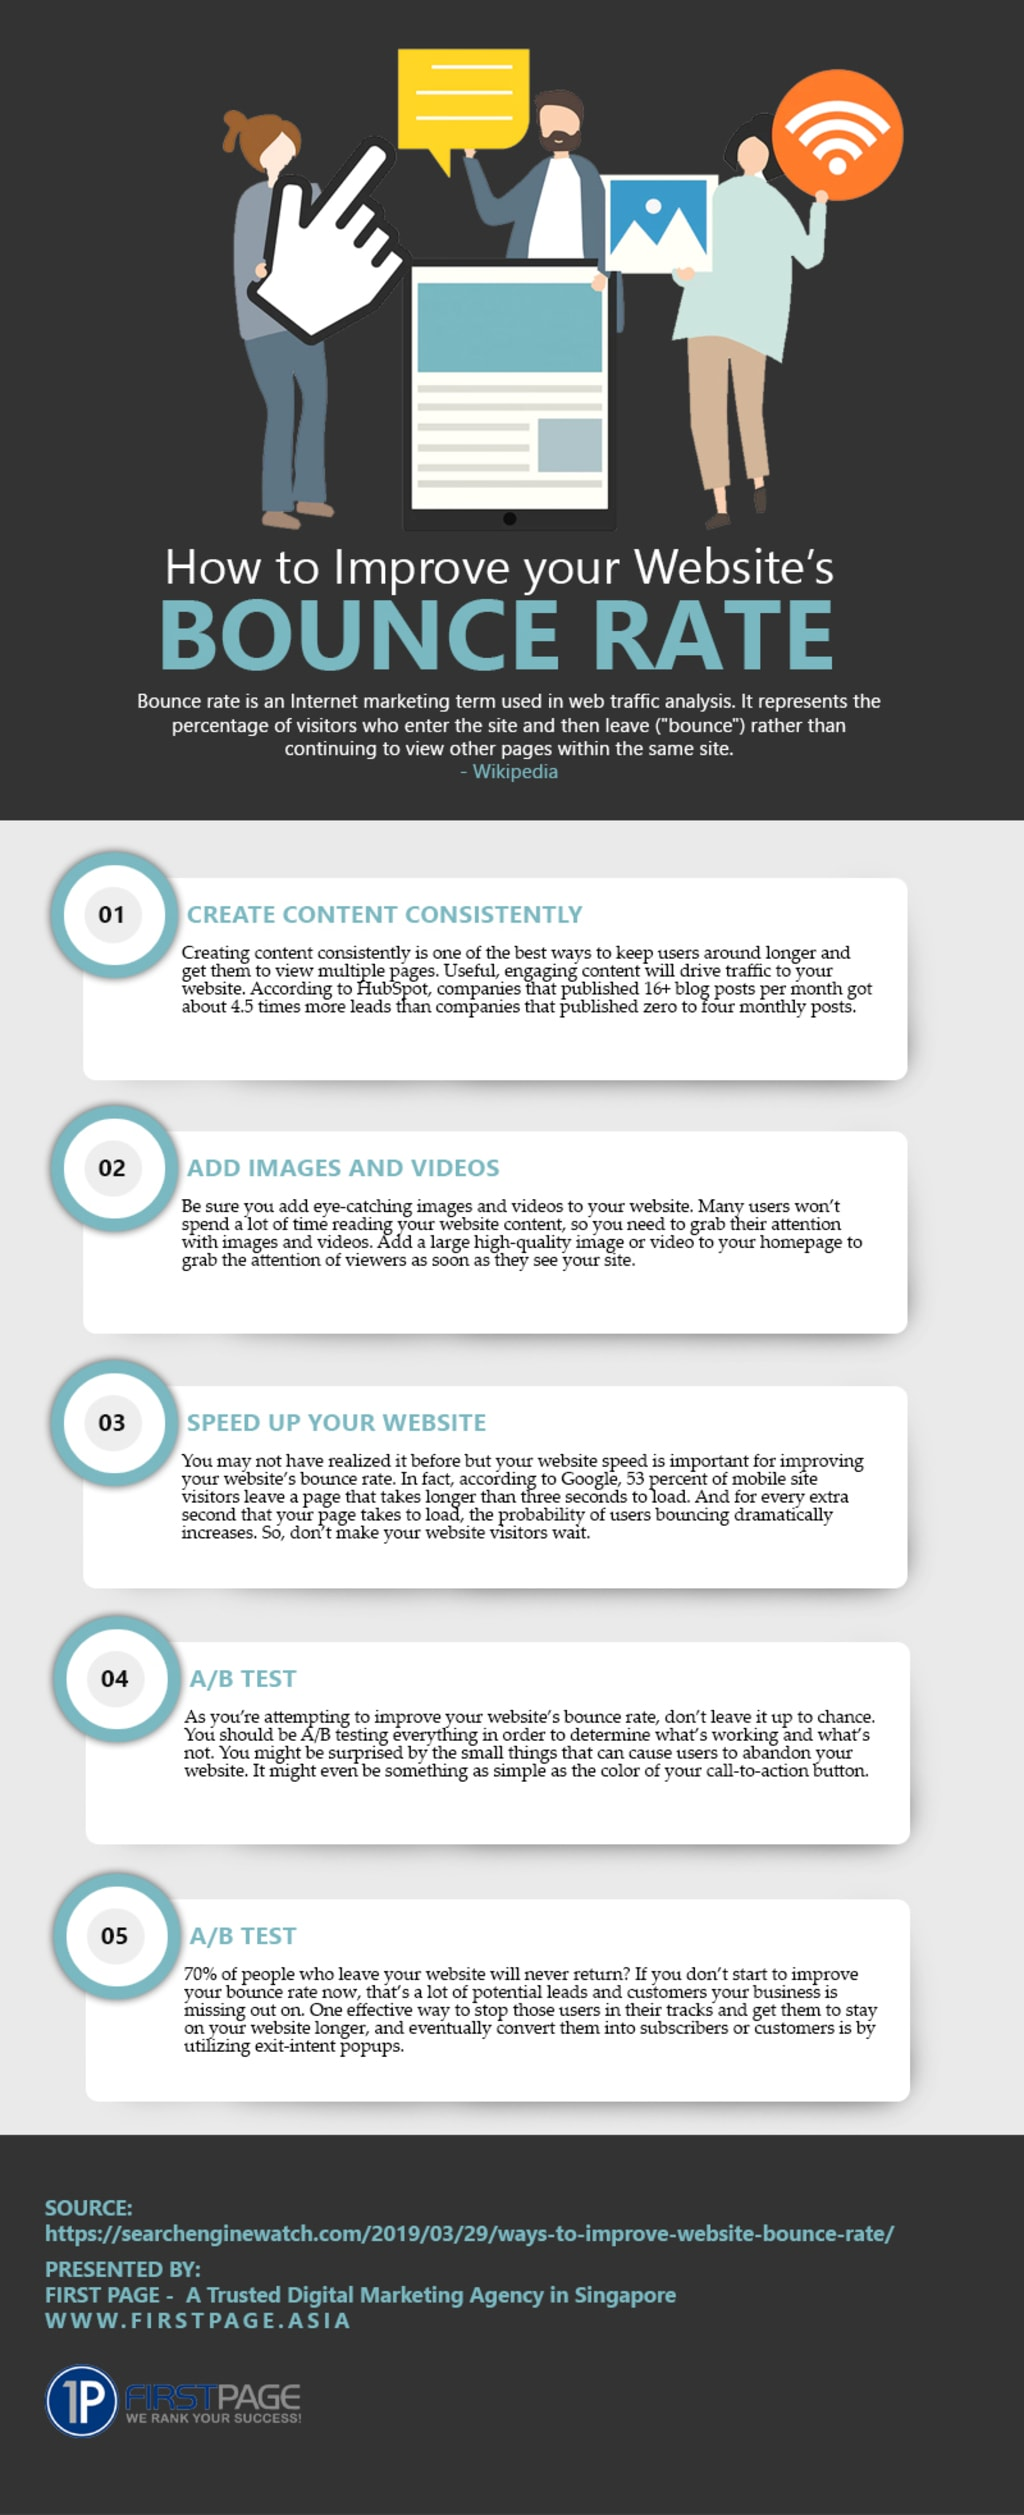 SEO Guide: How to Improve your Website's Bounce Rate? via Chester Loke